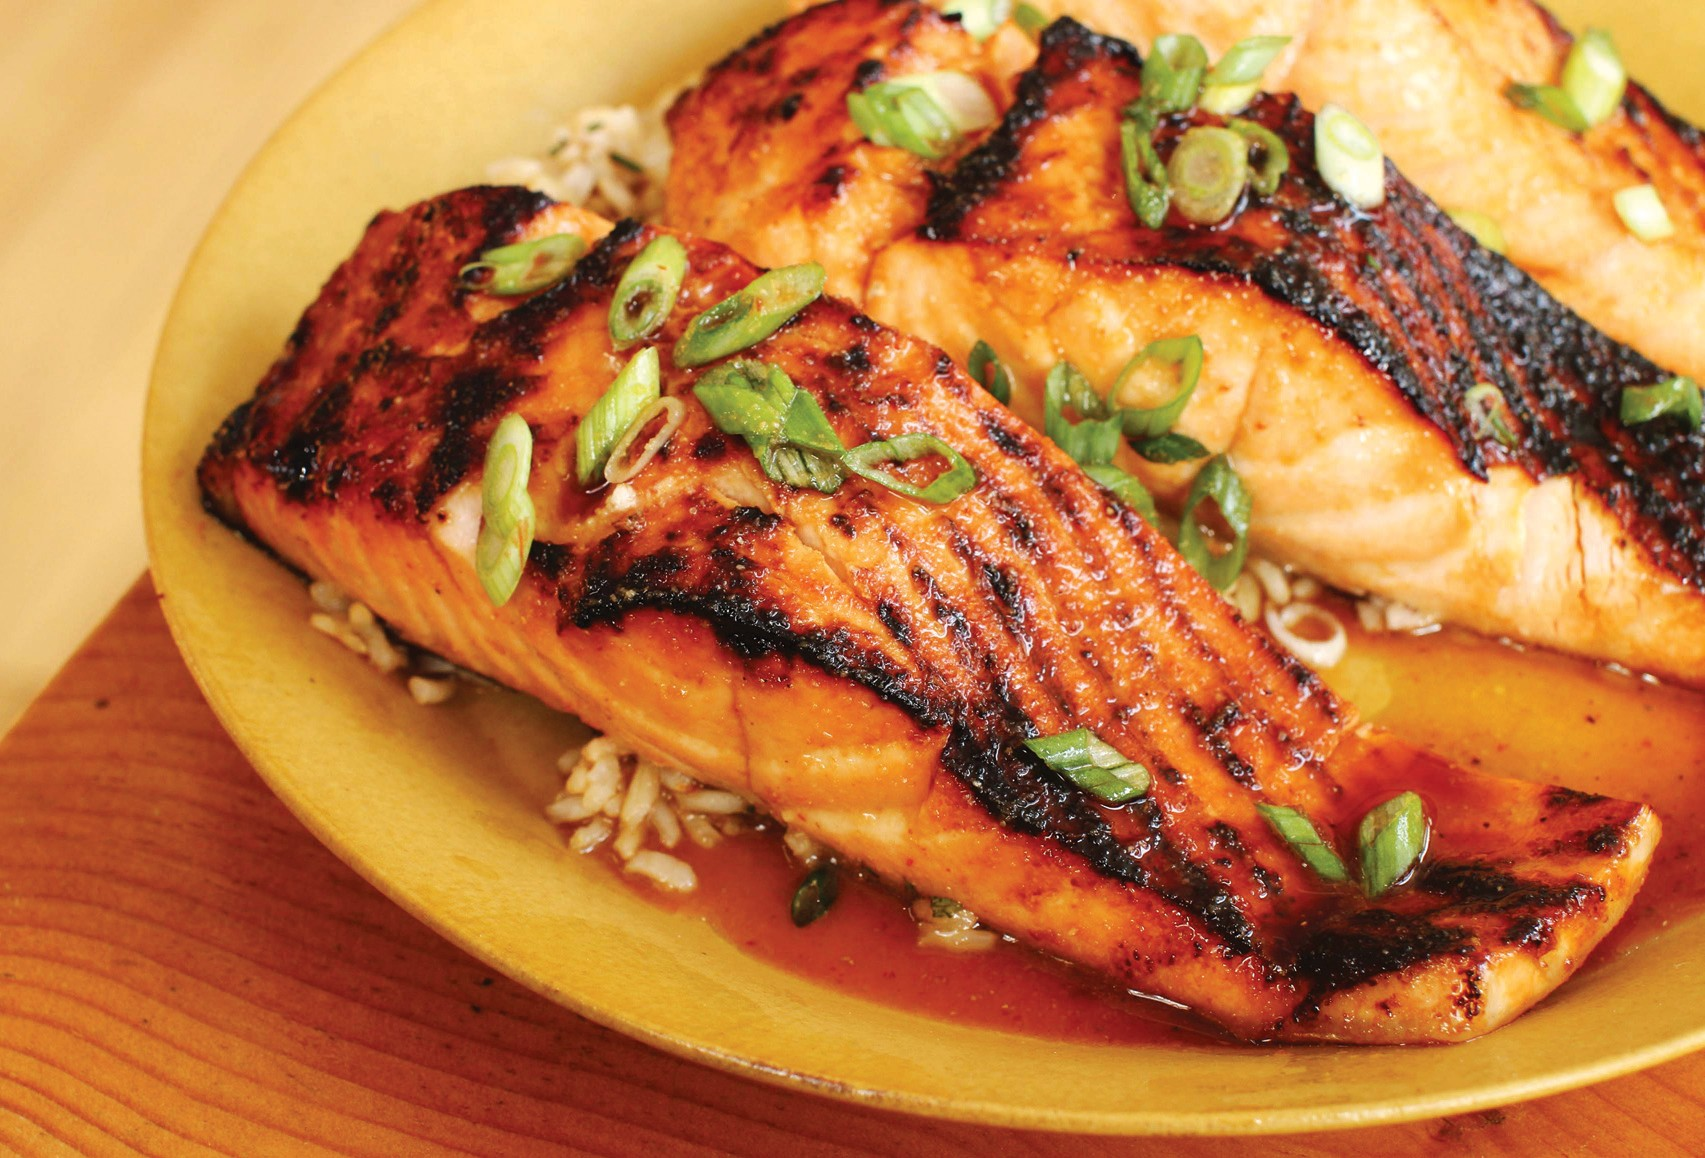 Teriyaki sauce on salmon. This incredibly versatile and delicious teriyaki sauce recipe can be used on whatever protein at hand: chicken, steak, pork or salmon.